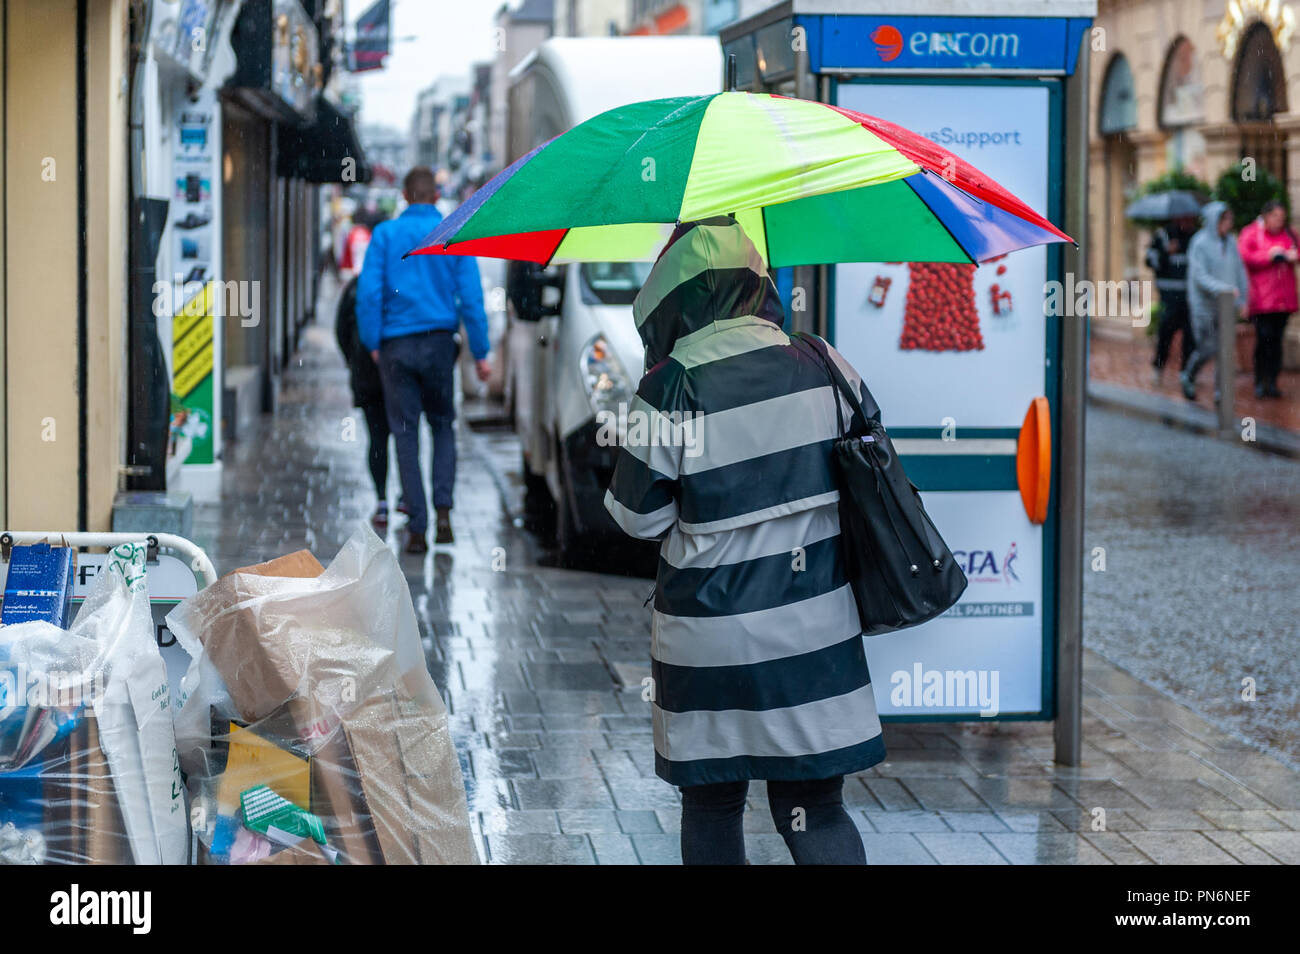 cork-ireland-20th-sept-2018-people-hurry-to-their-destination-in-heavy-rain-in-cork-city-centre-cork-is-one-of-7-irish-counties-to-be-issued-a-yellow-weather-warning-by-met-eireann-with-storm-bronagh-expected-to-hit-ireland-on-sunday-credit-andy-gibsonalamy-live-news-PN6NEF.jpg